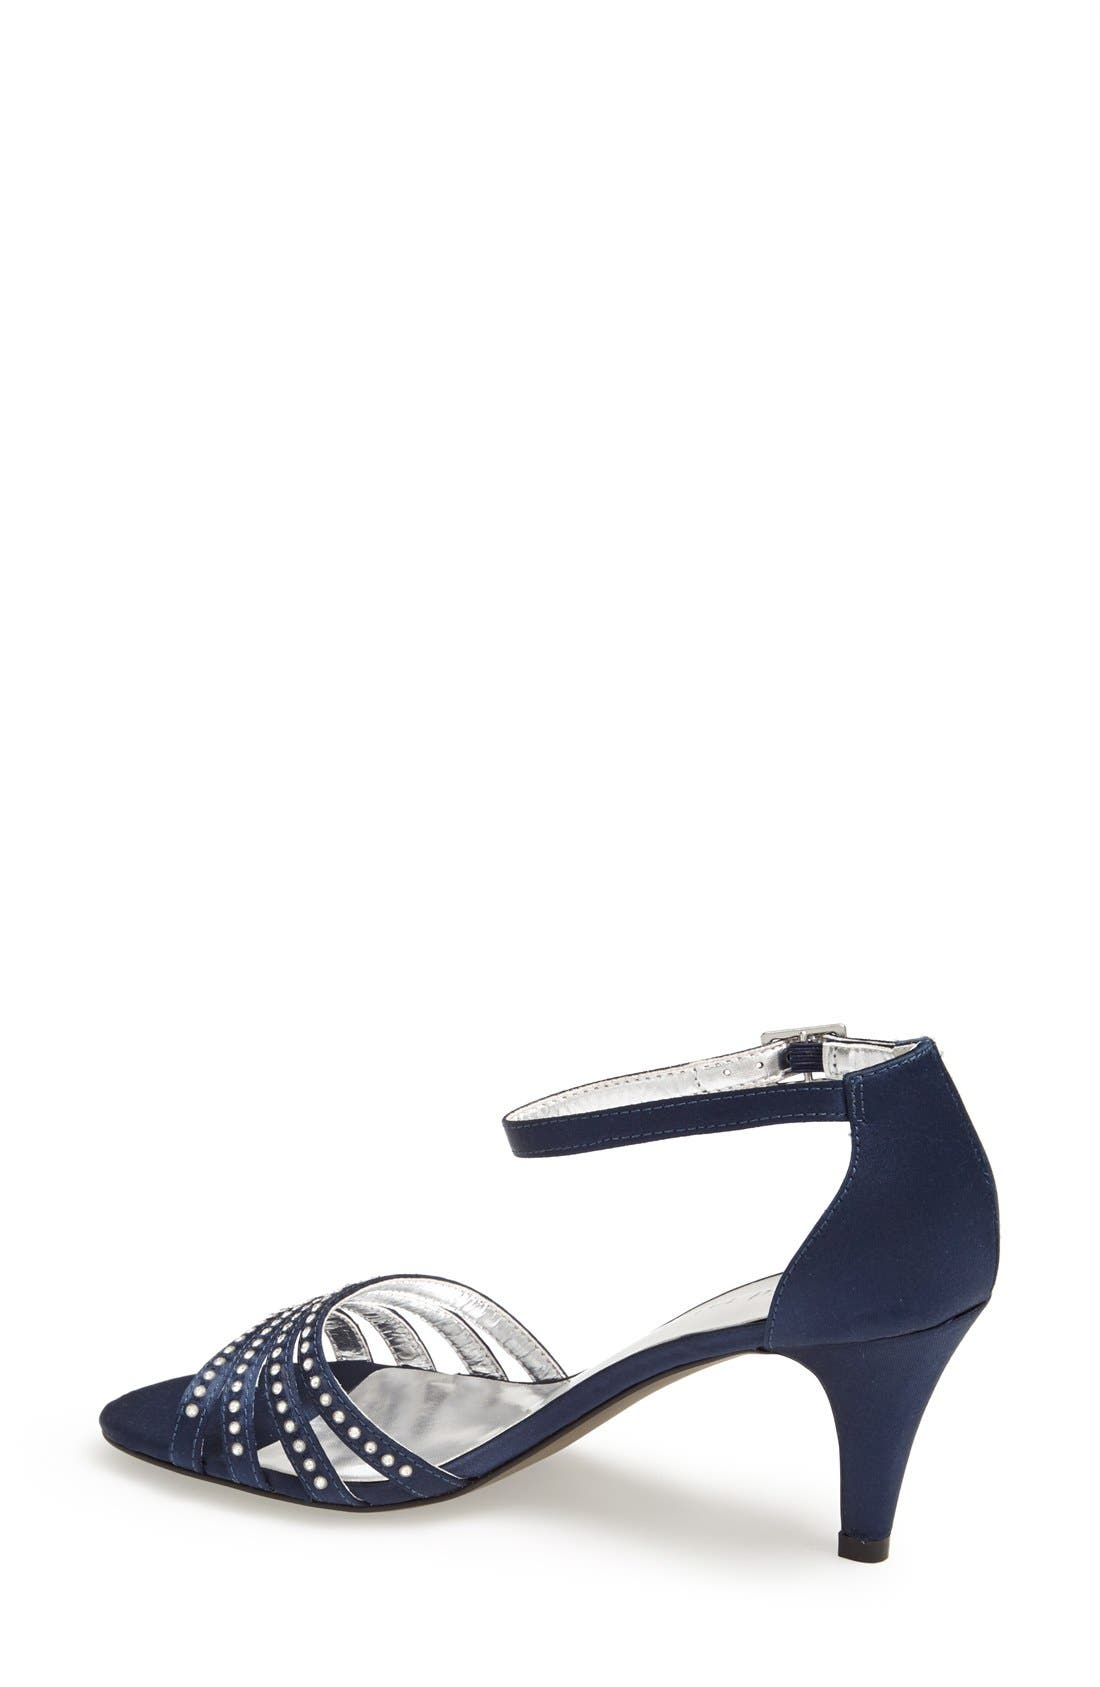 'Terra' Ankle Strap Sandal,                             Alternate thumbnail 2, color,                             Navy Satin